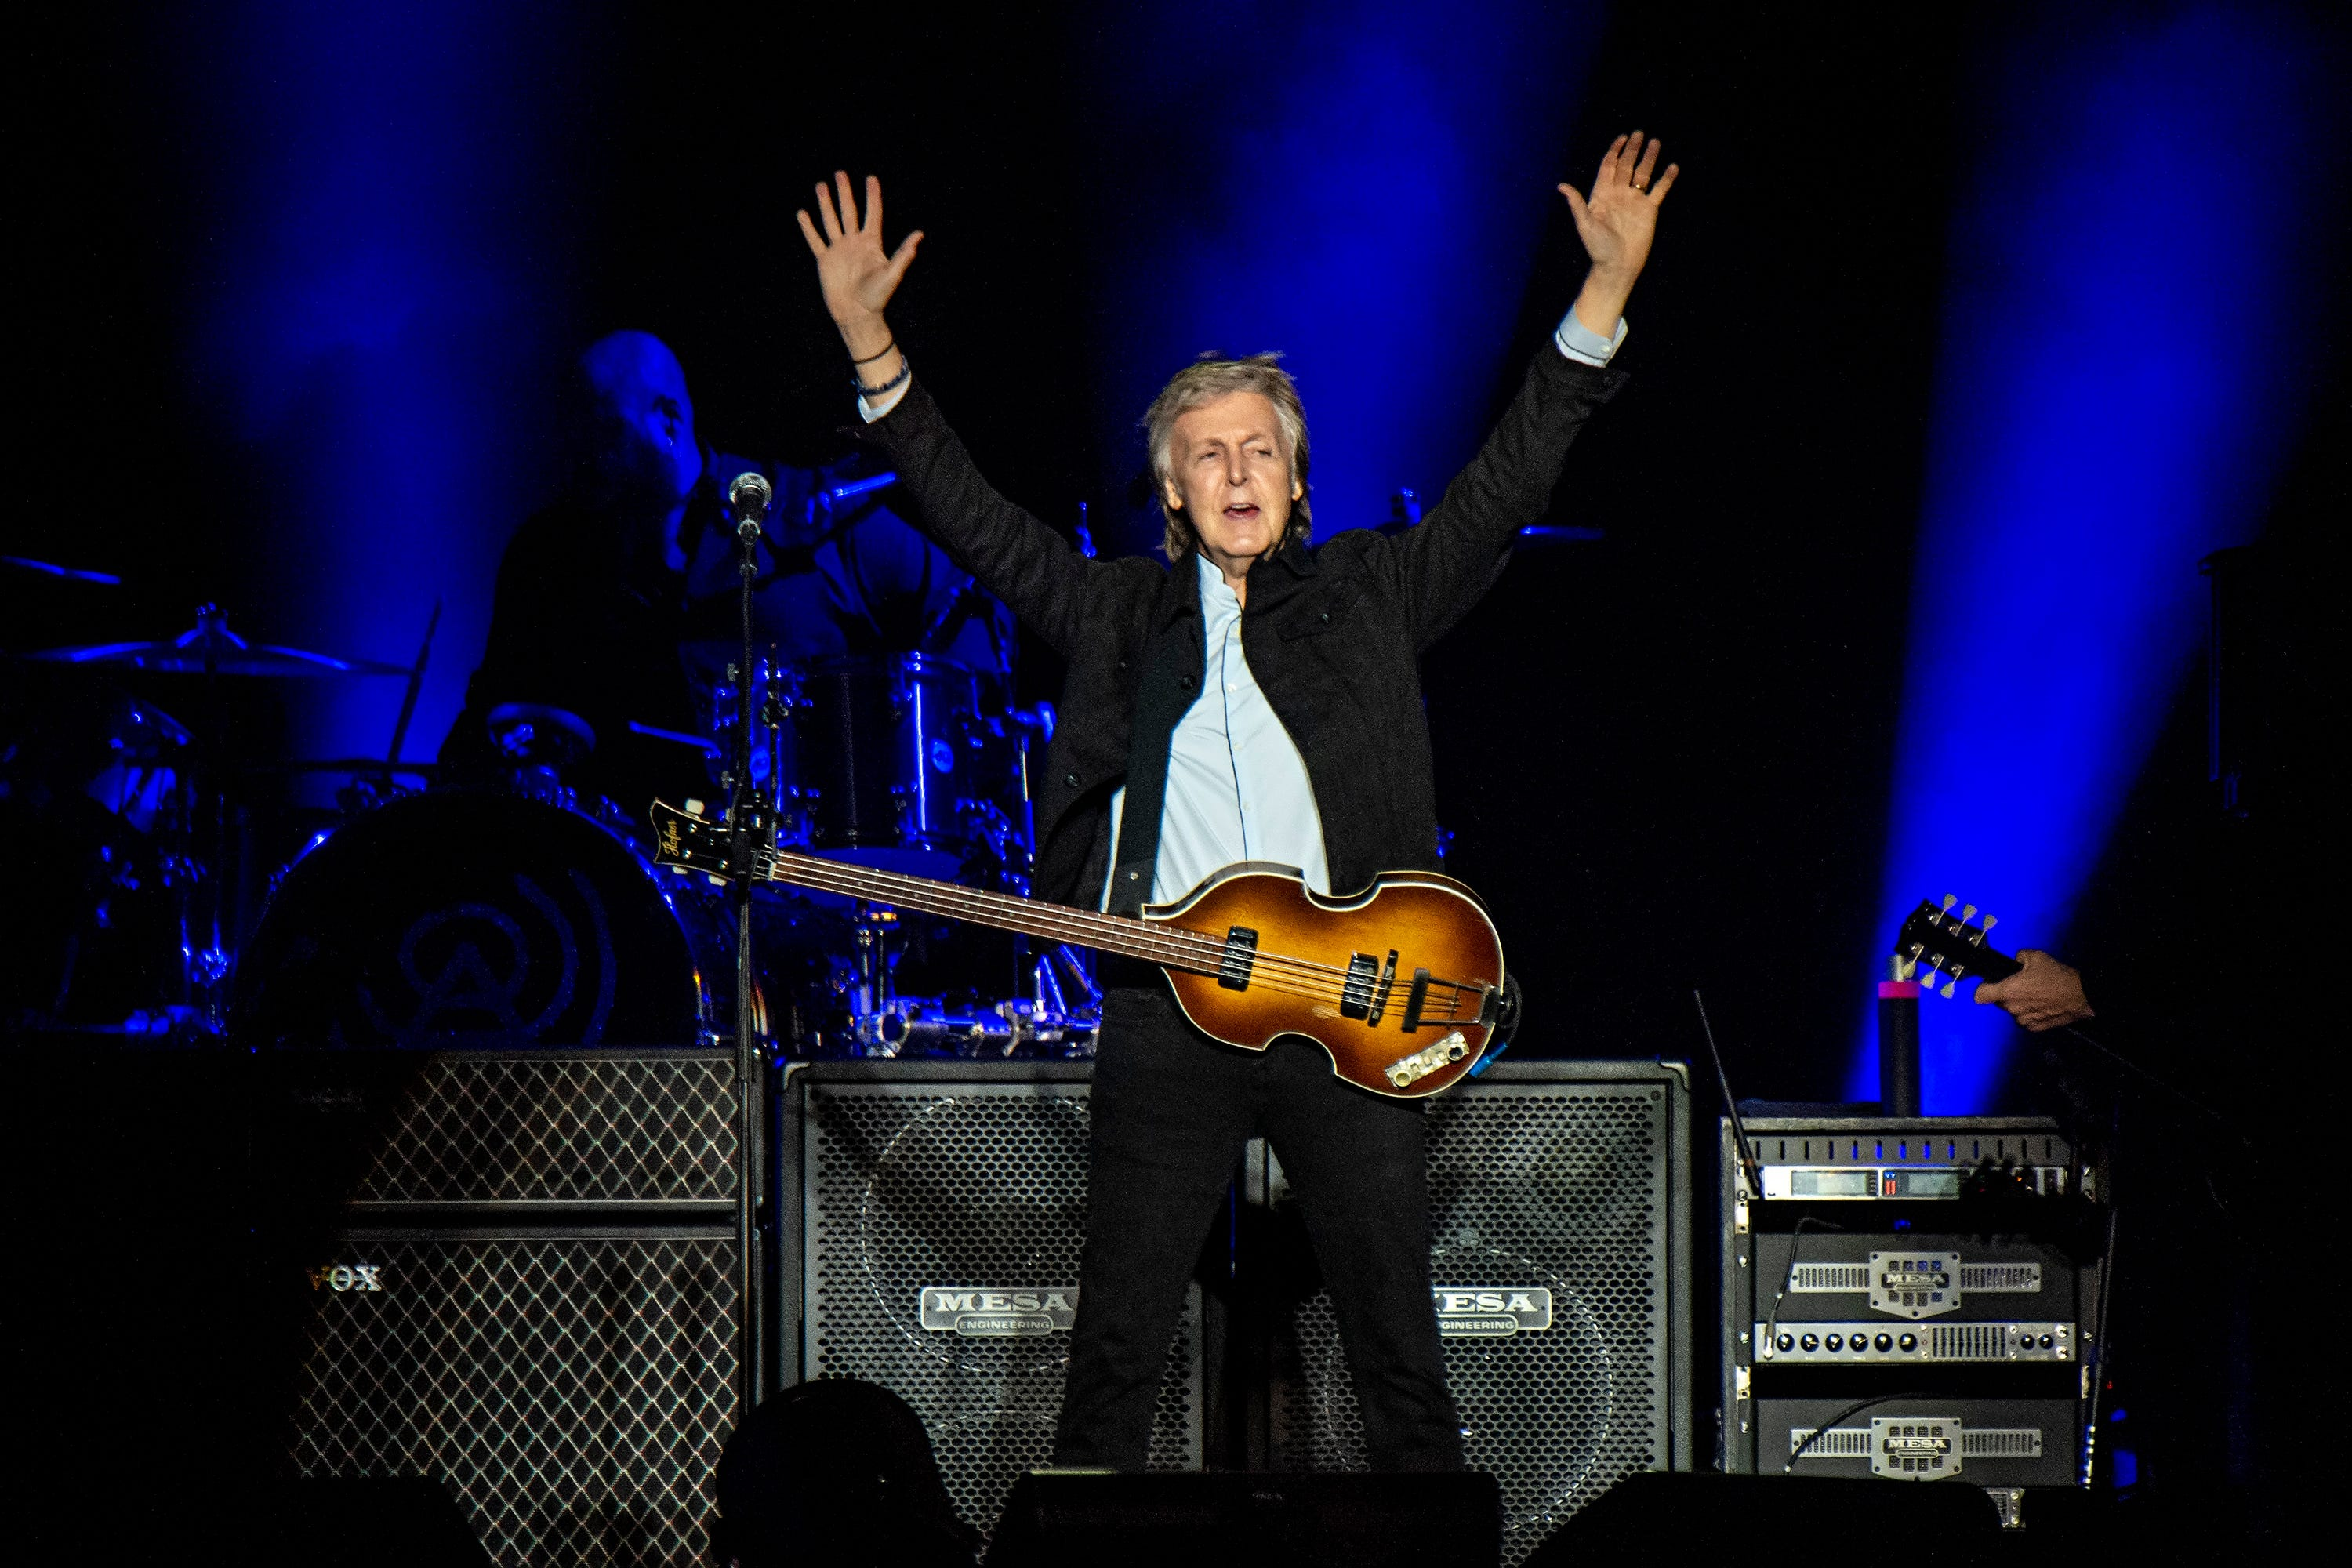 Paul McCartney  almost blamed myself  for Beatles breakup, says he sued band to save its music